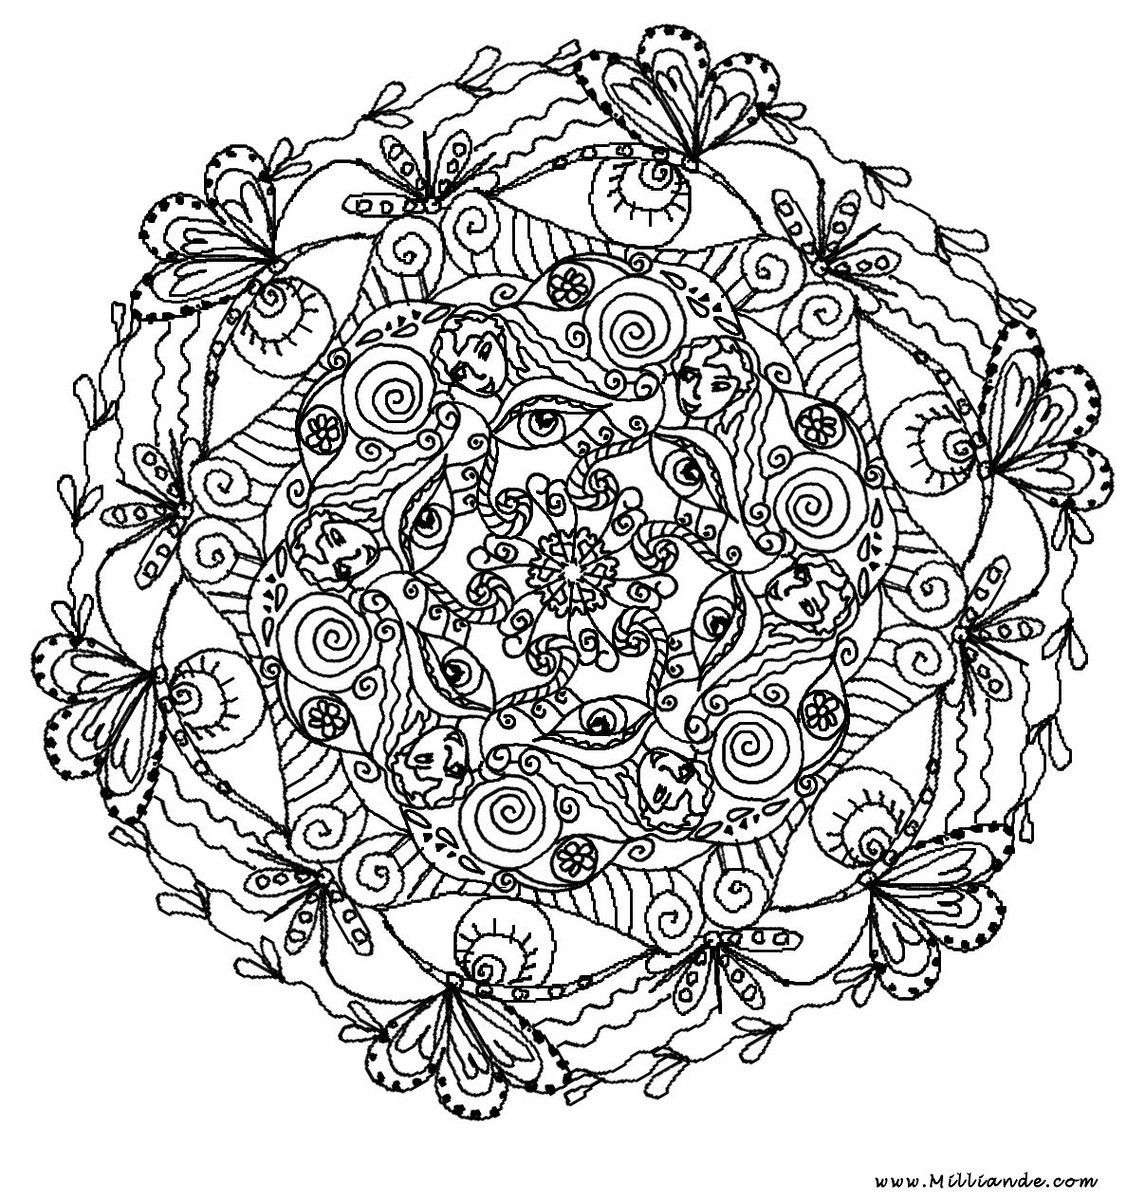 - Mandala Coloring Pages Complicated - Coloring Home